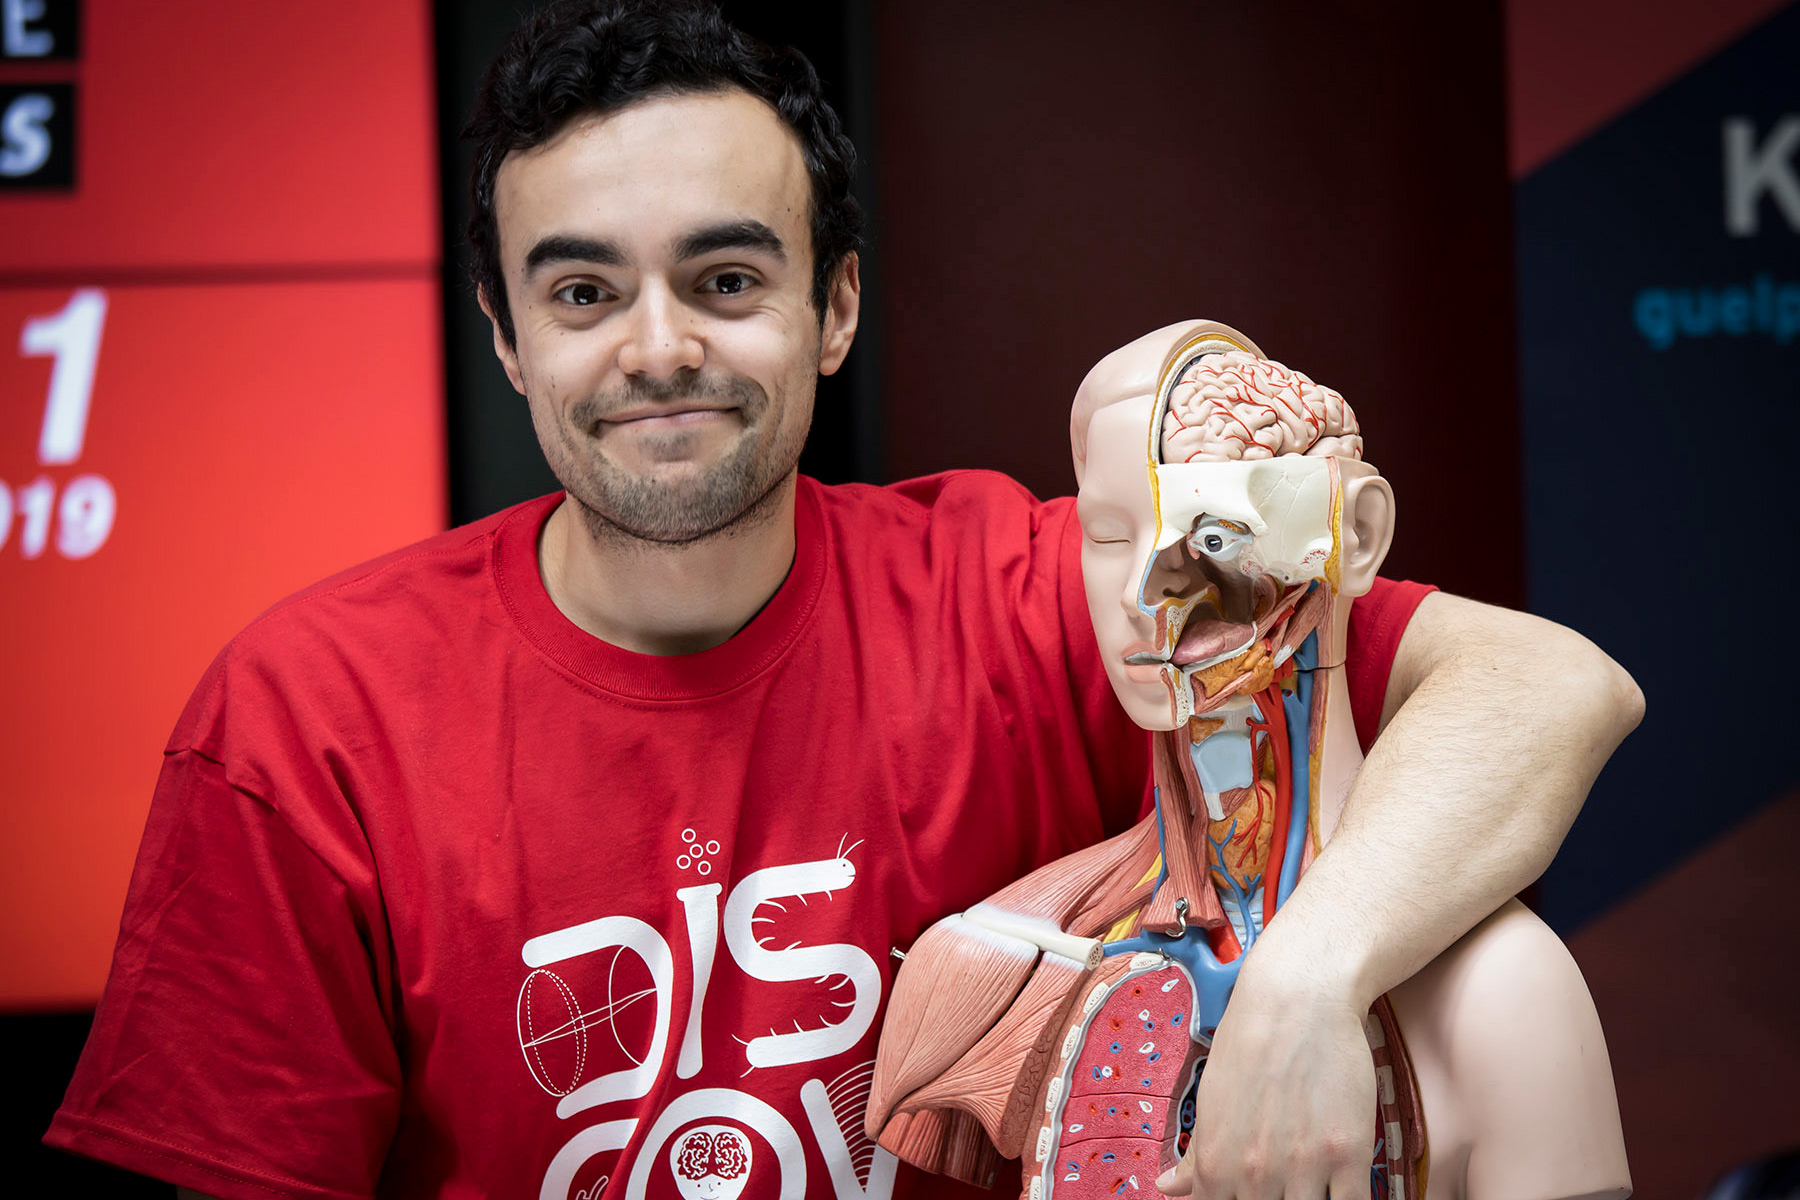 exhibitor posing for picture with dummy human